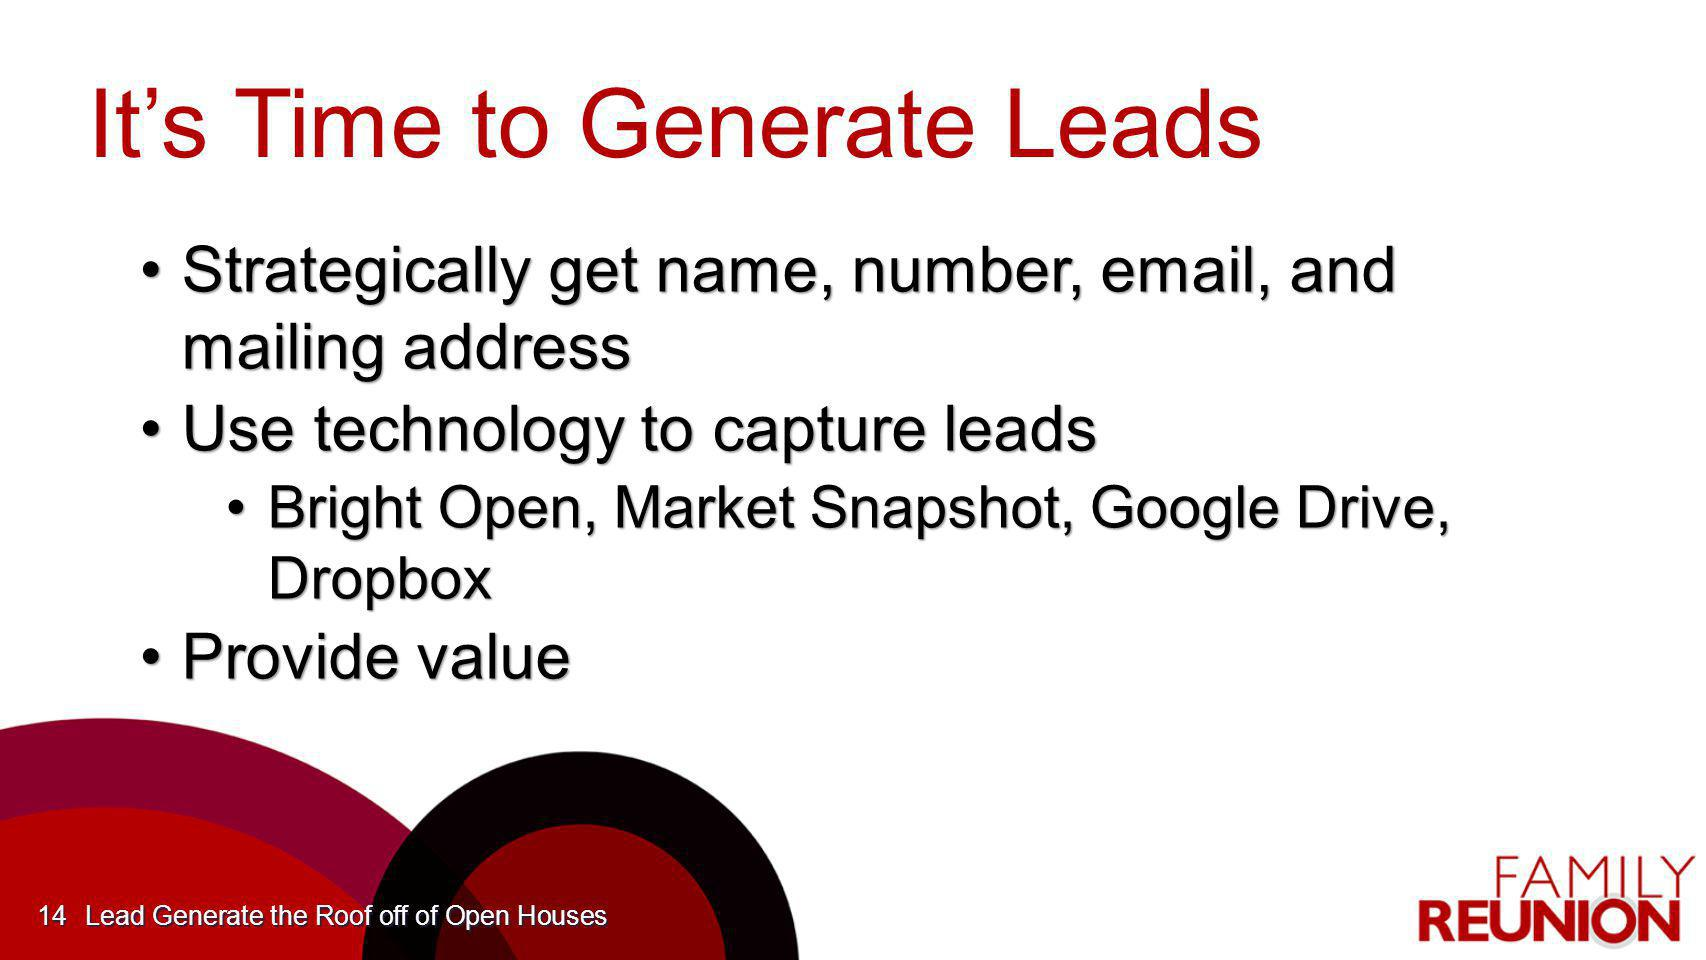 It's Time to Generate Leads